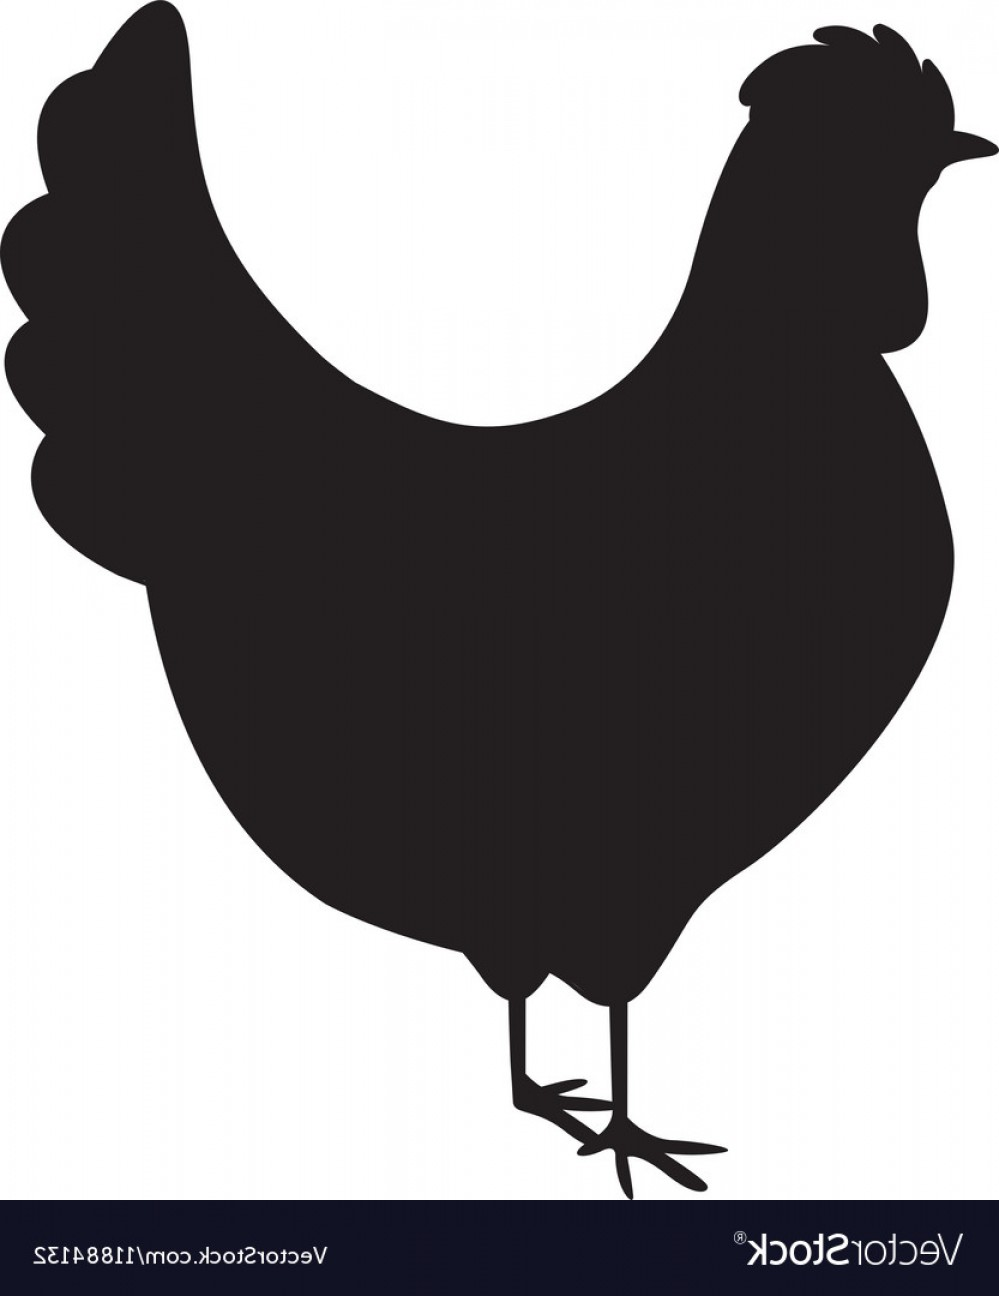 Poultry Vector Art: Silhouette Monochrome Color With Chicken Vector